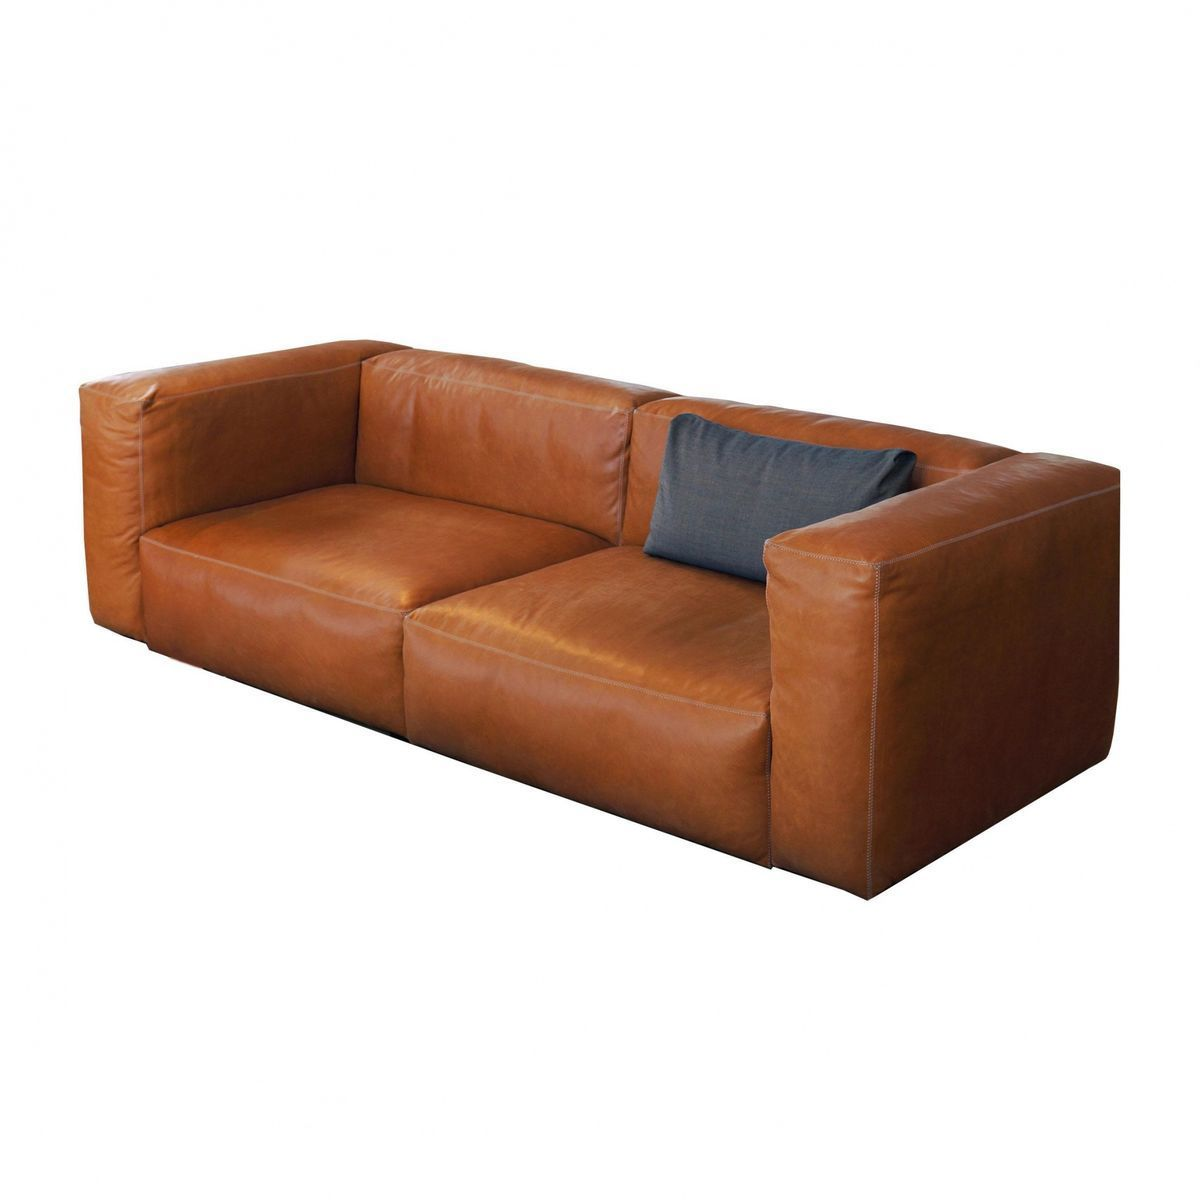 Sofa Without Legs Most Comfortable Sofa You Must Ly For